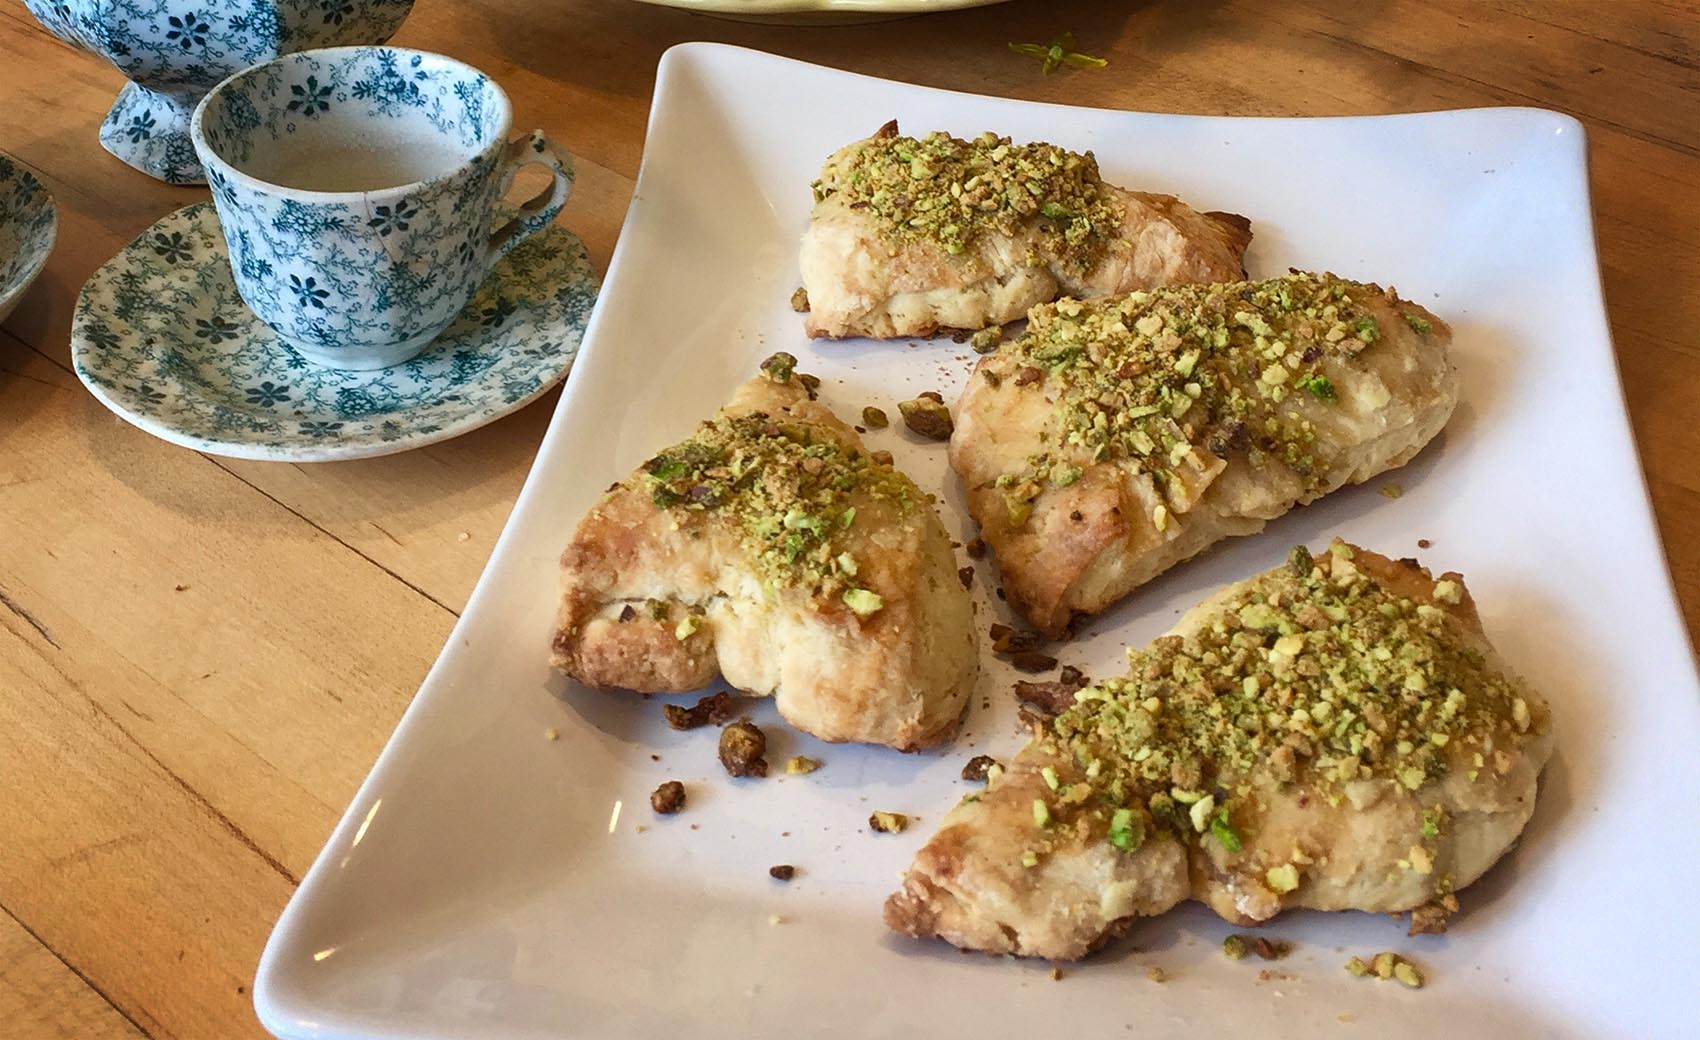 Kathy's ginger buttermilk scones with maple-pistachio nut glaze. (Kathy Gunst for Here & Now)